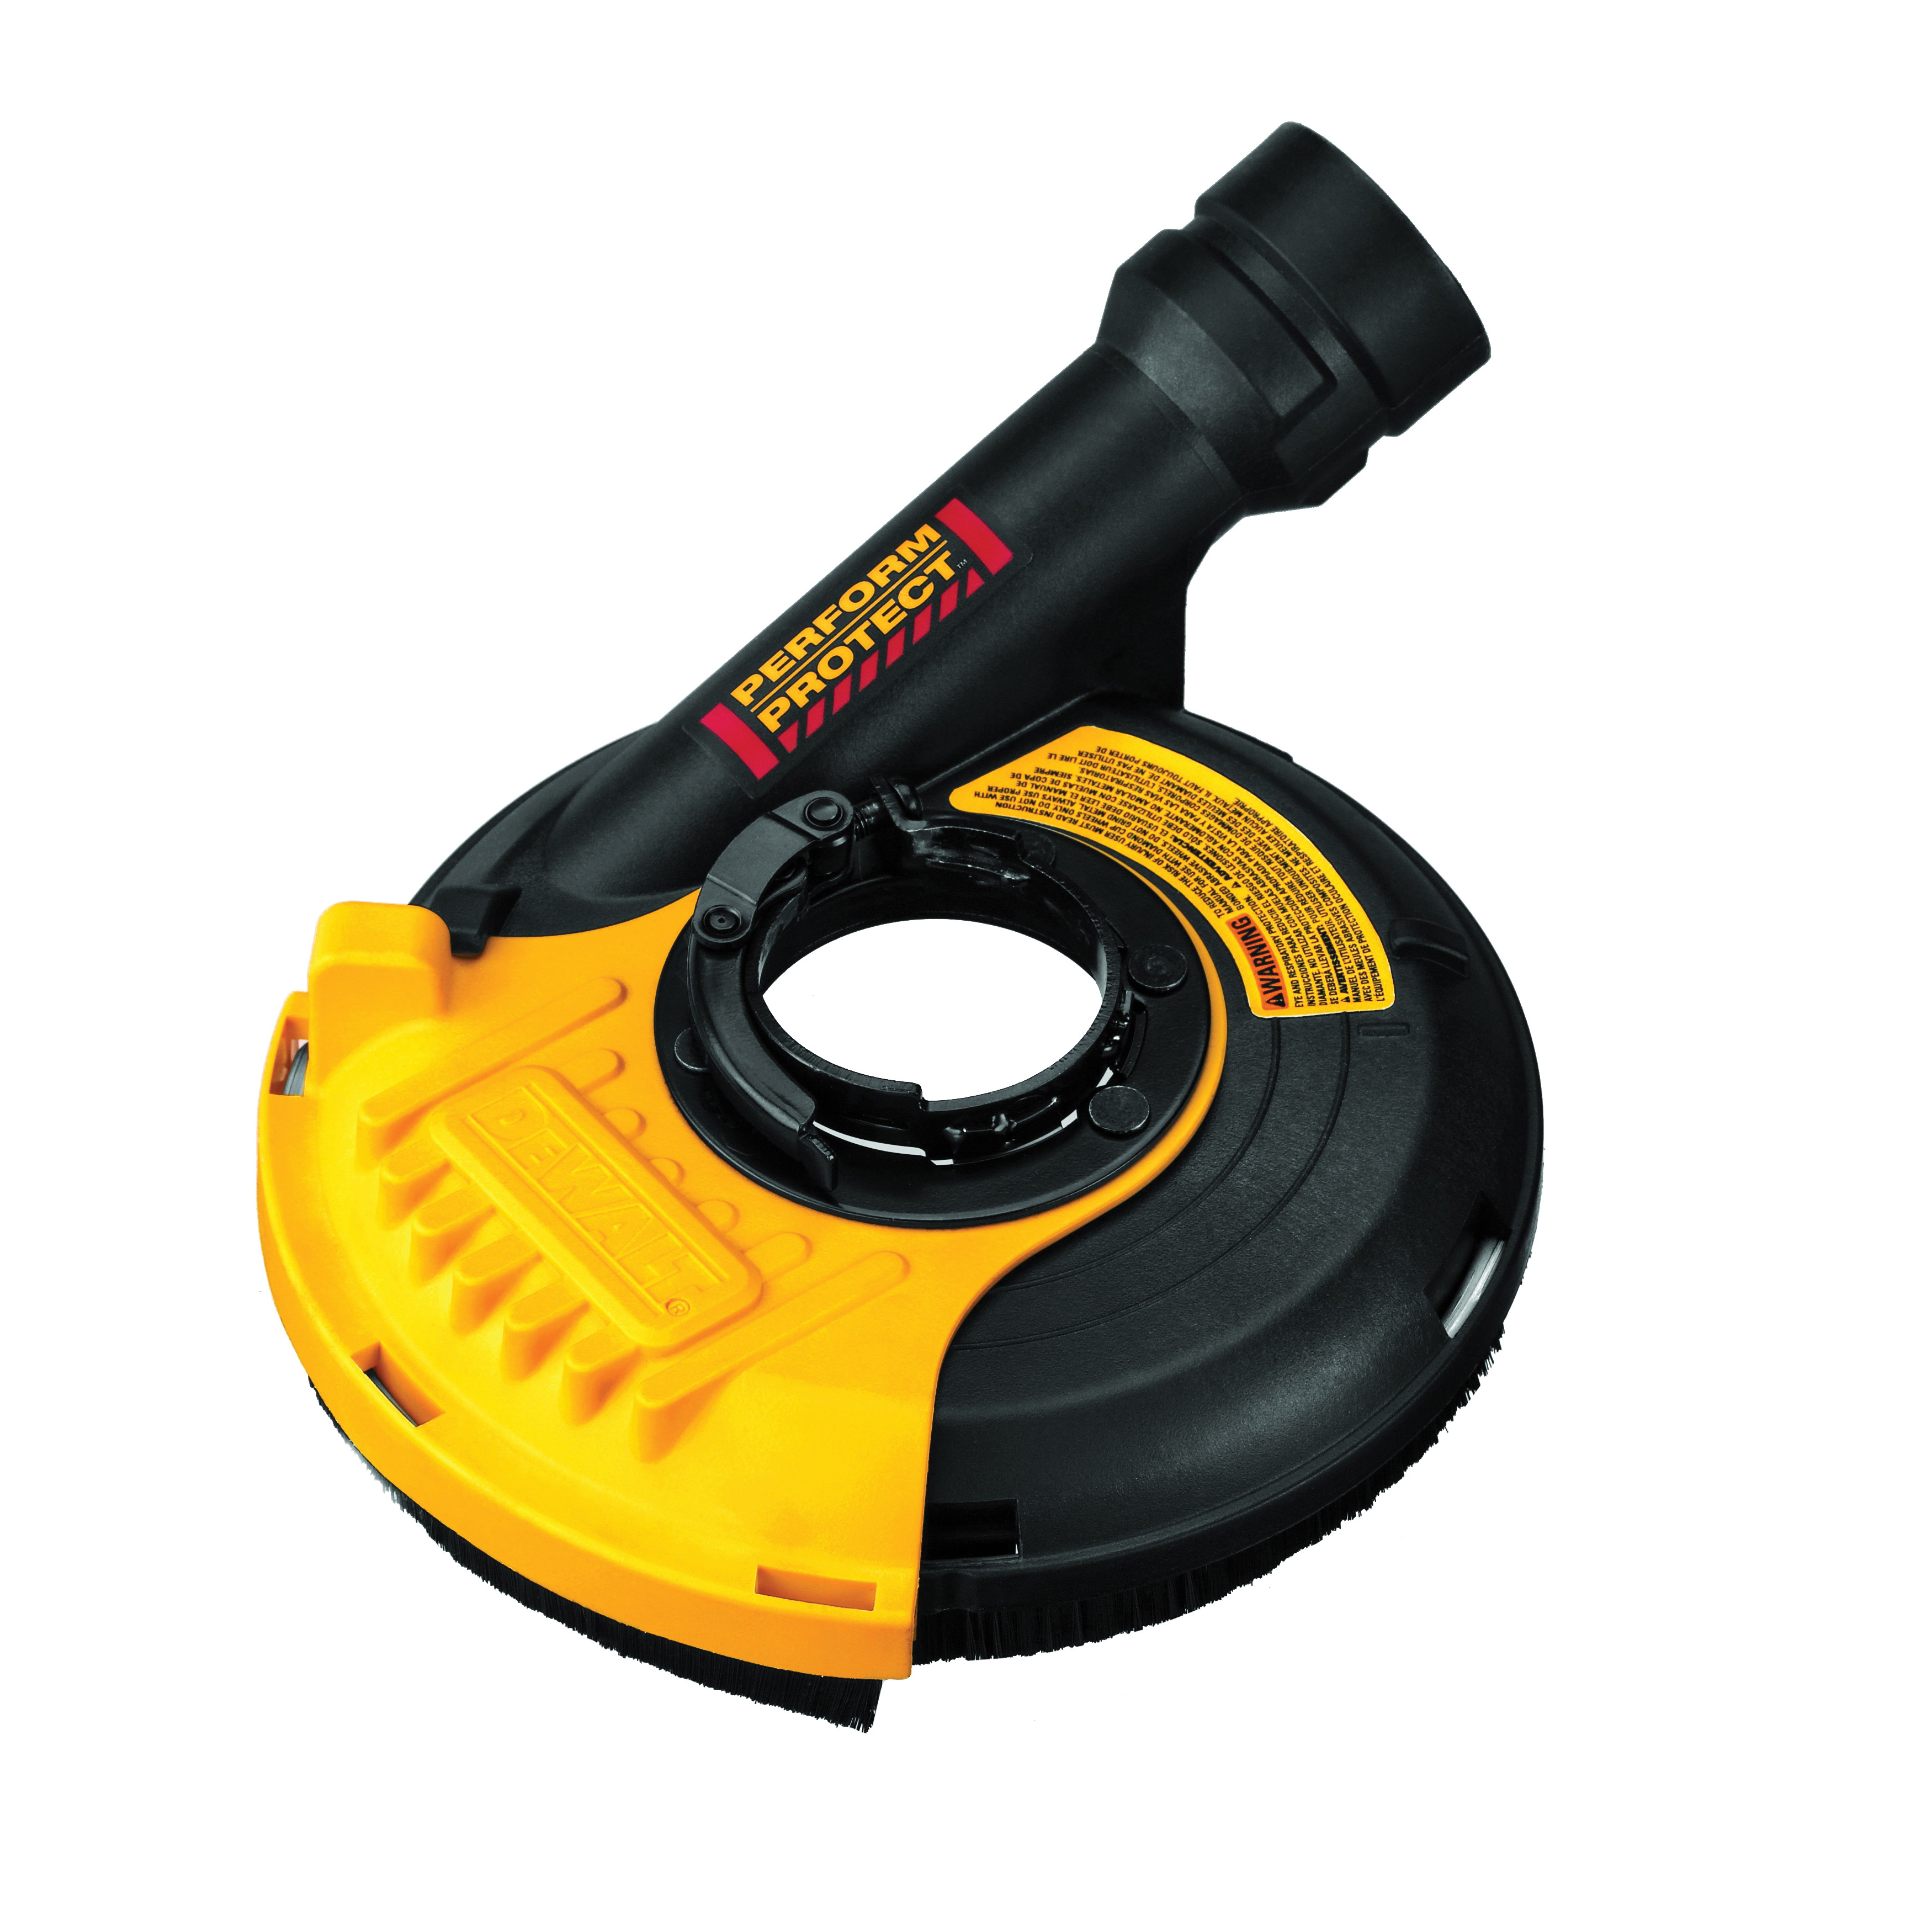 DeWALT® DWE46152 Dust Extraction Surface Grinding Dust Shroud, For Use With Grinder, 5 in Dia